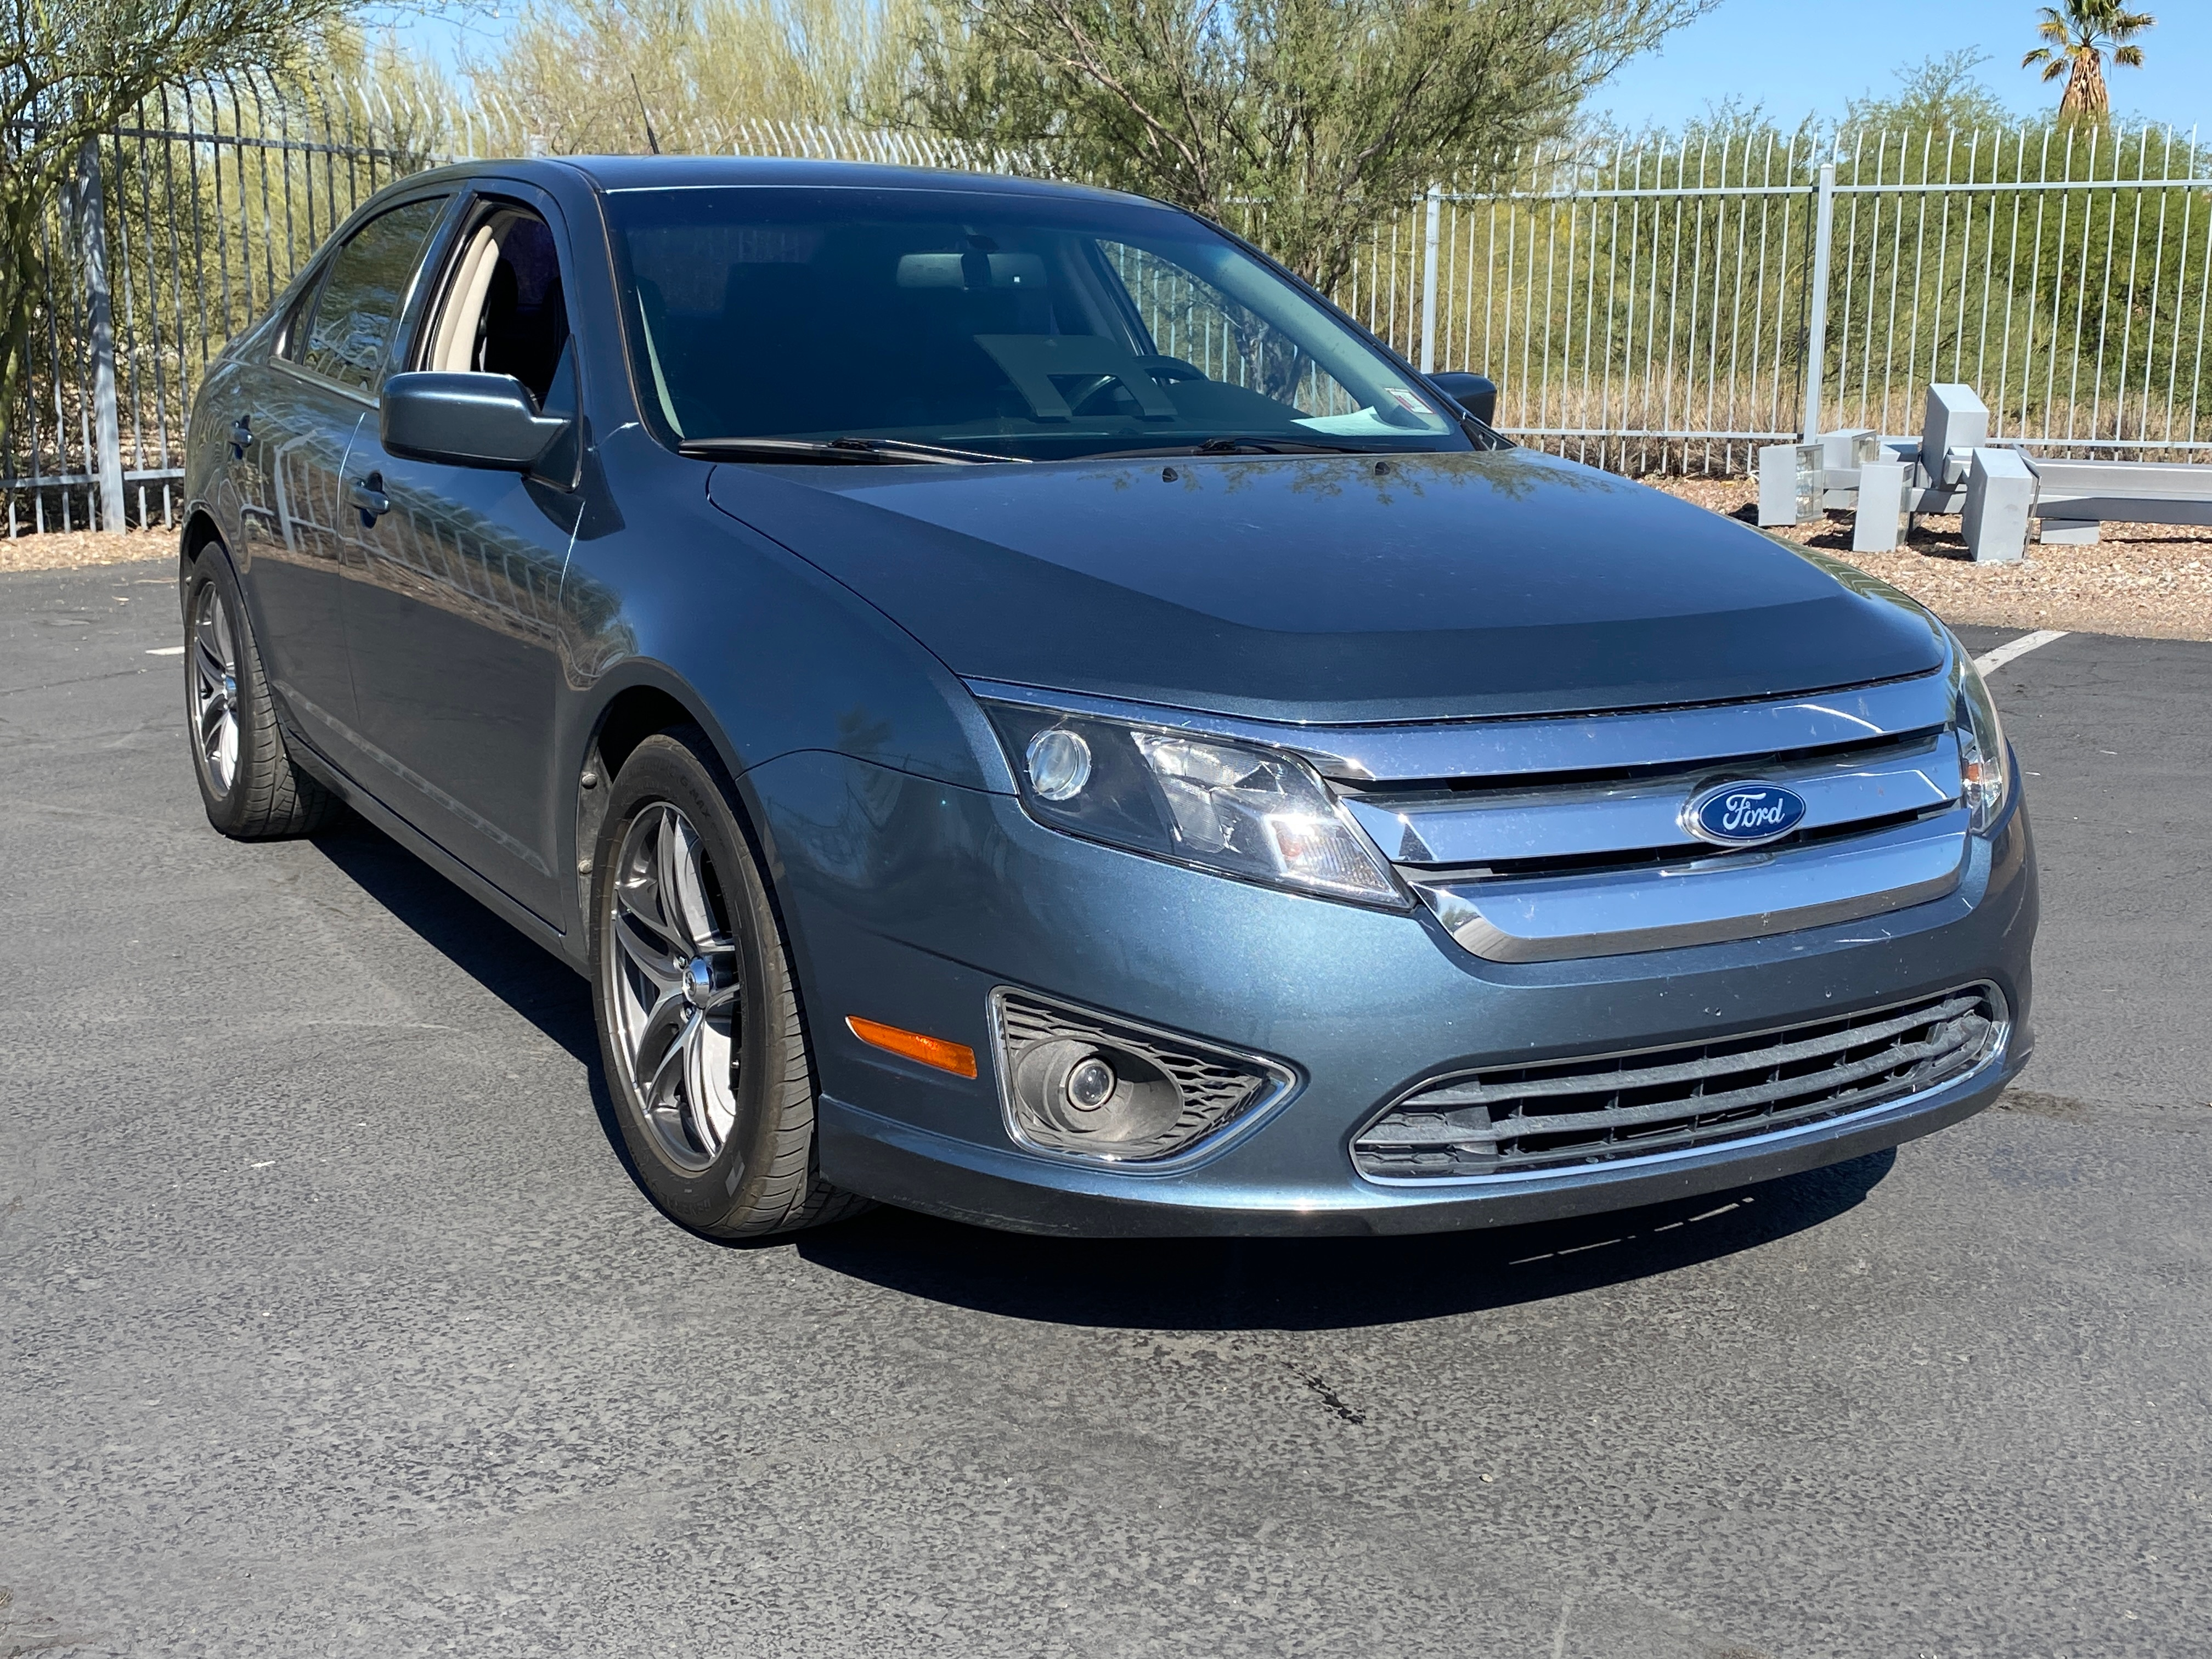 used 2011 Ford Fusion car, priced at $9,998